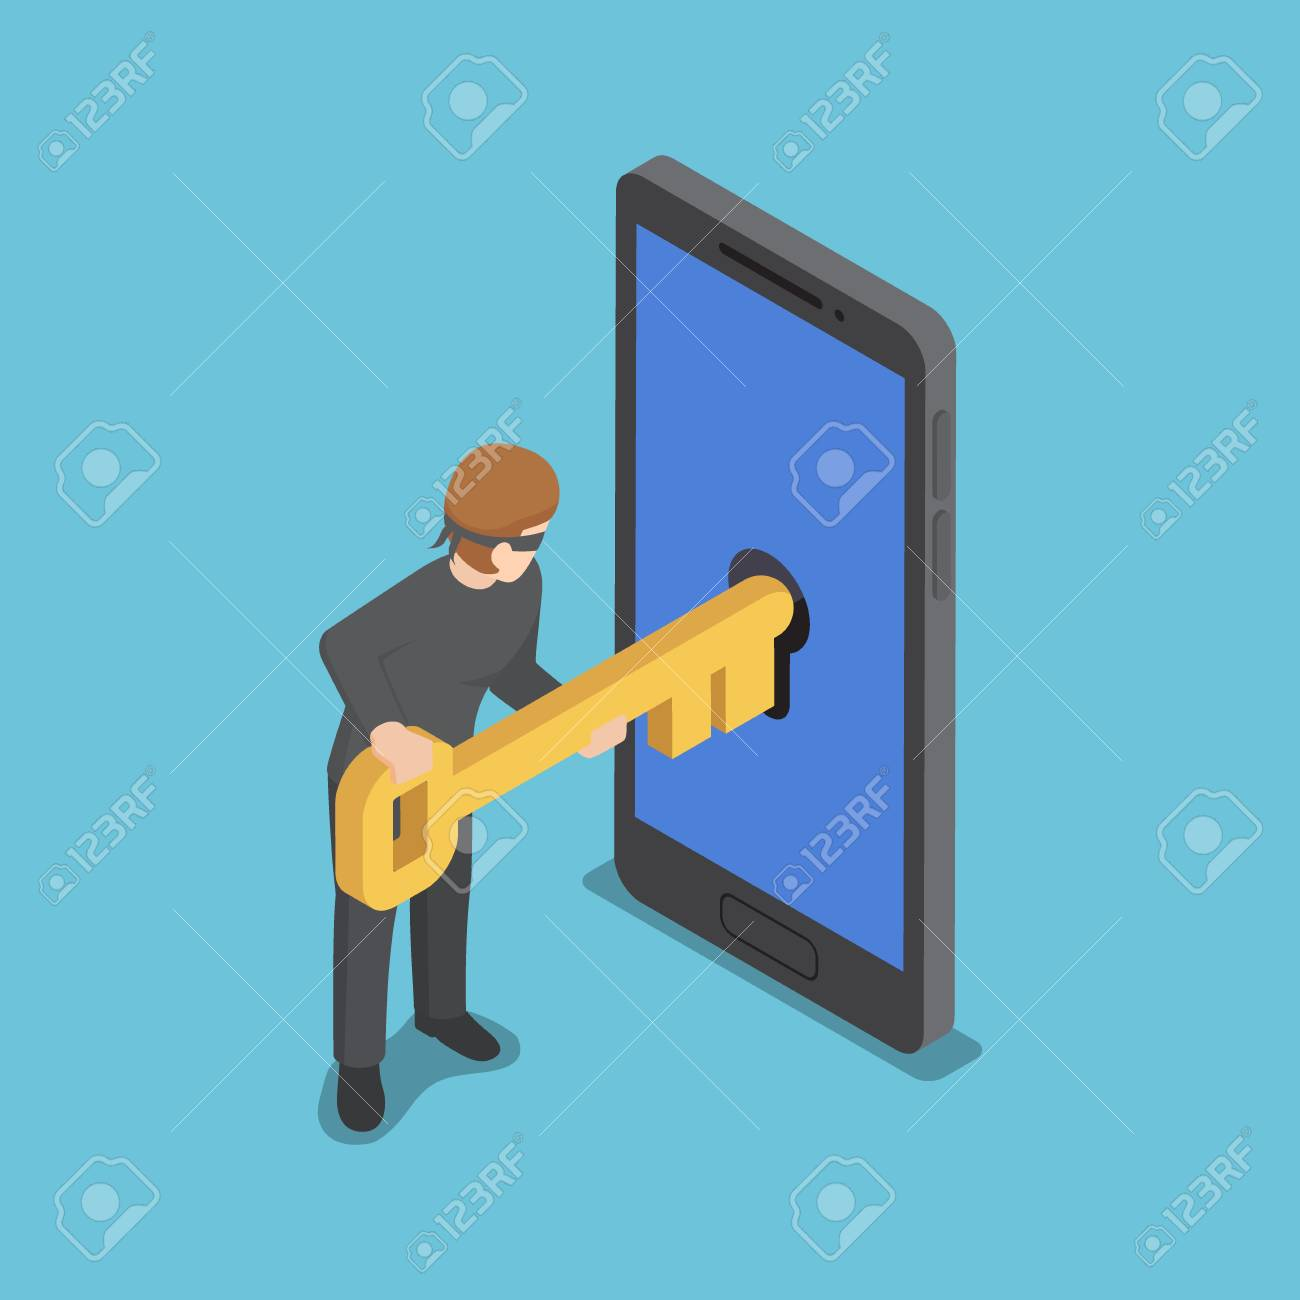 Flat 3d isometric thief or hacker use key to hack into smartphone,